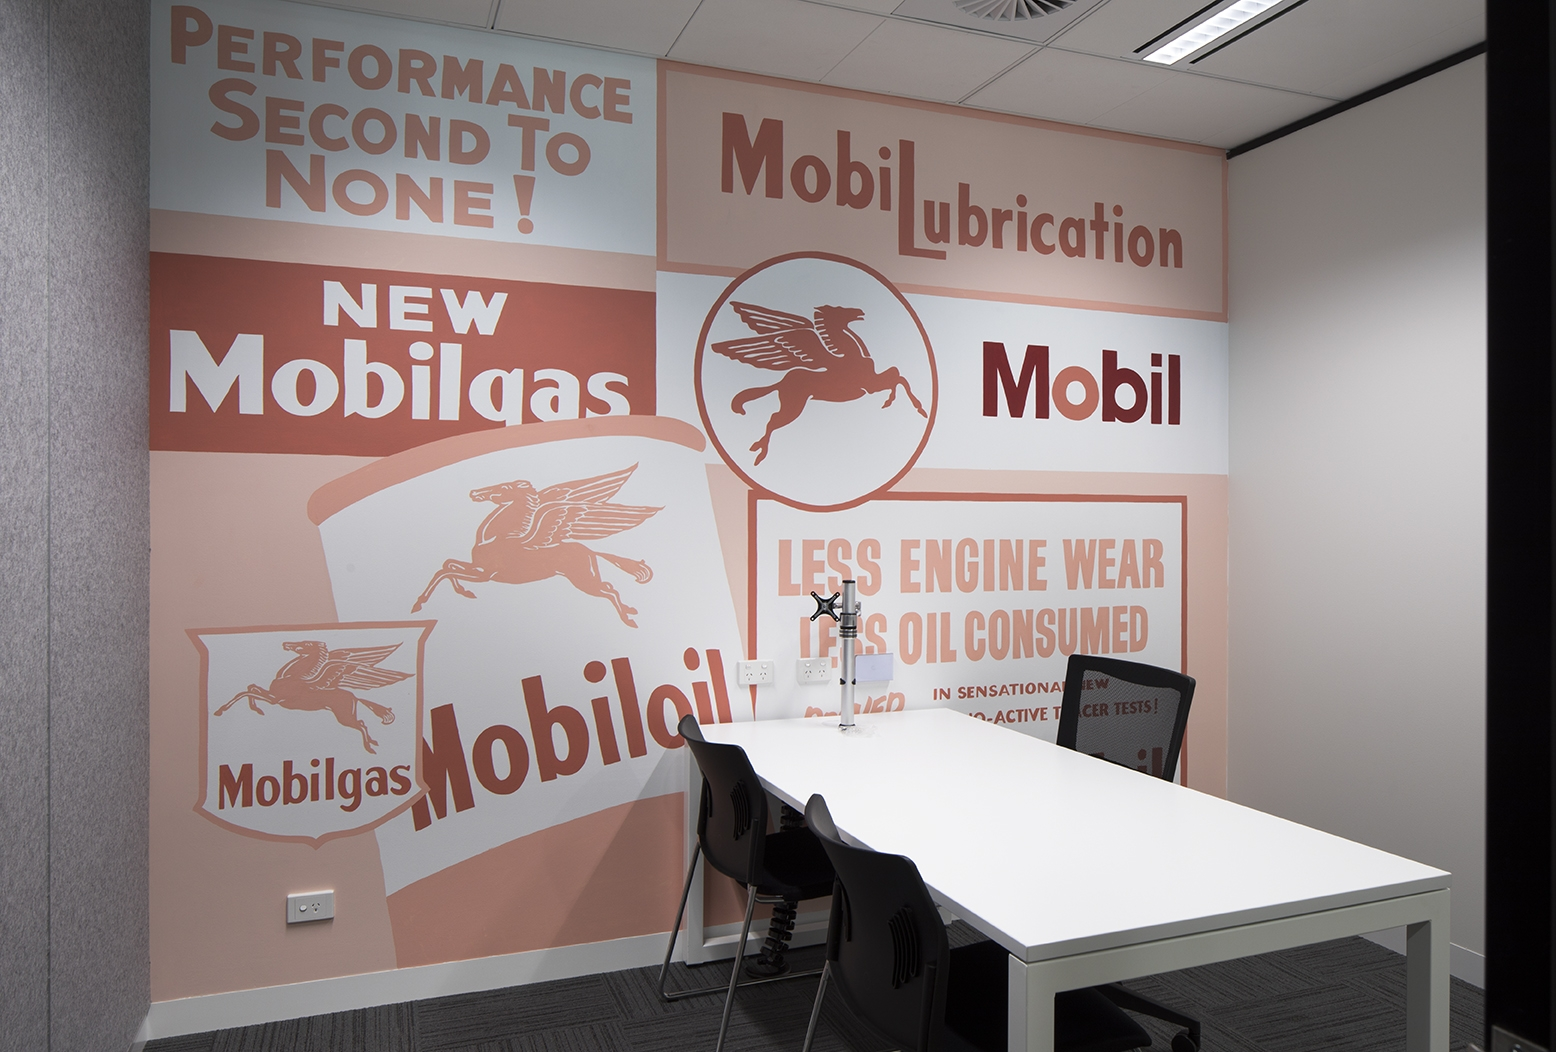 The Mobil meeting room